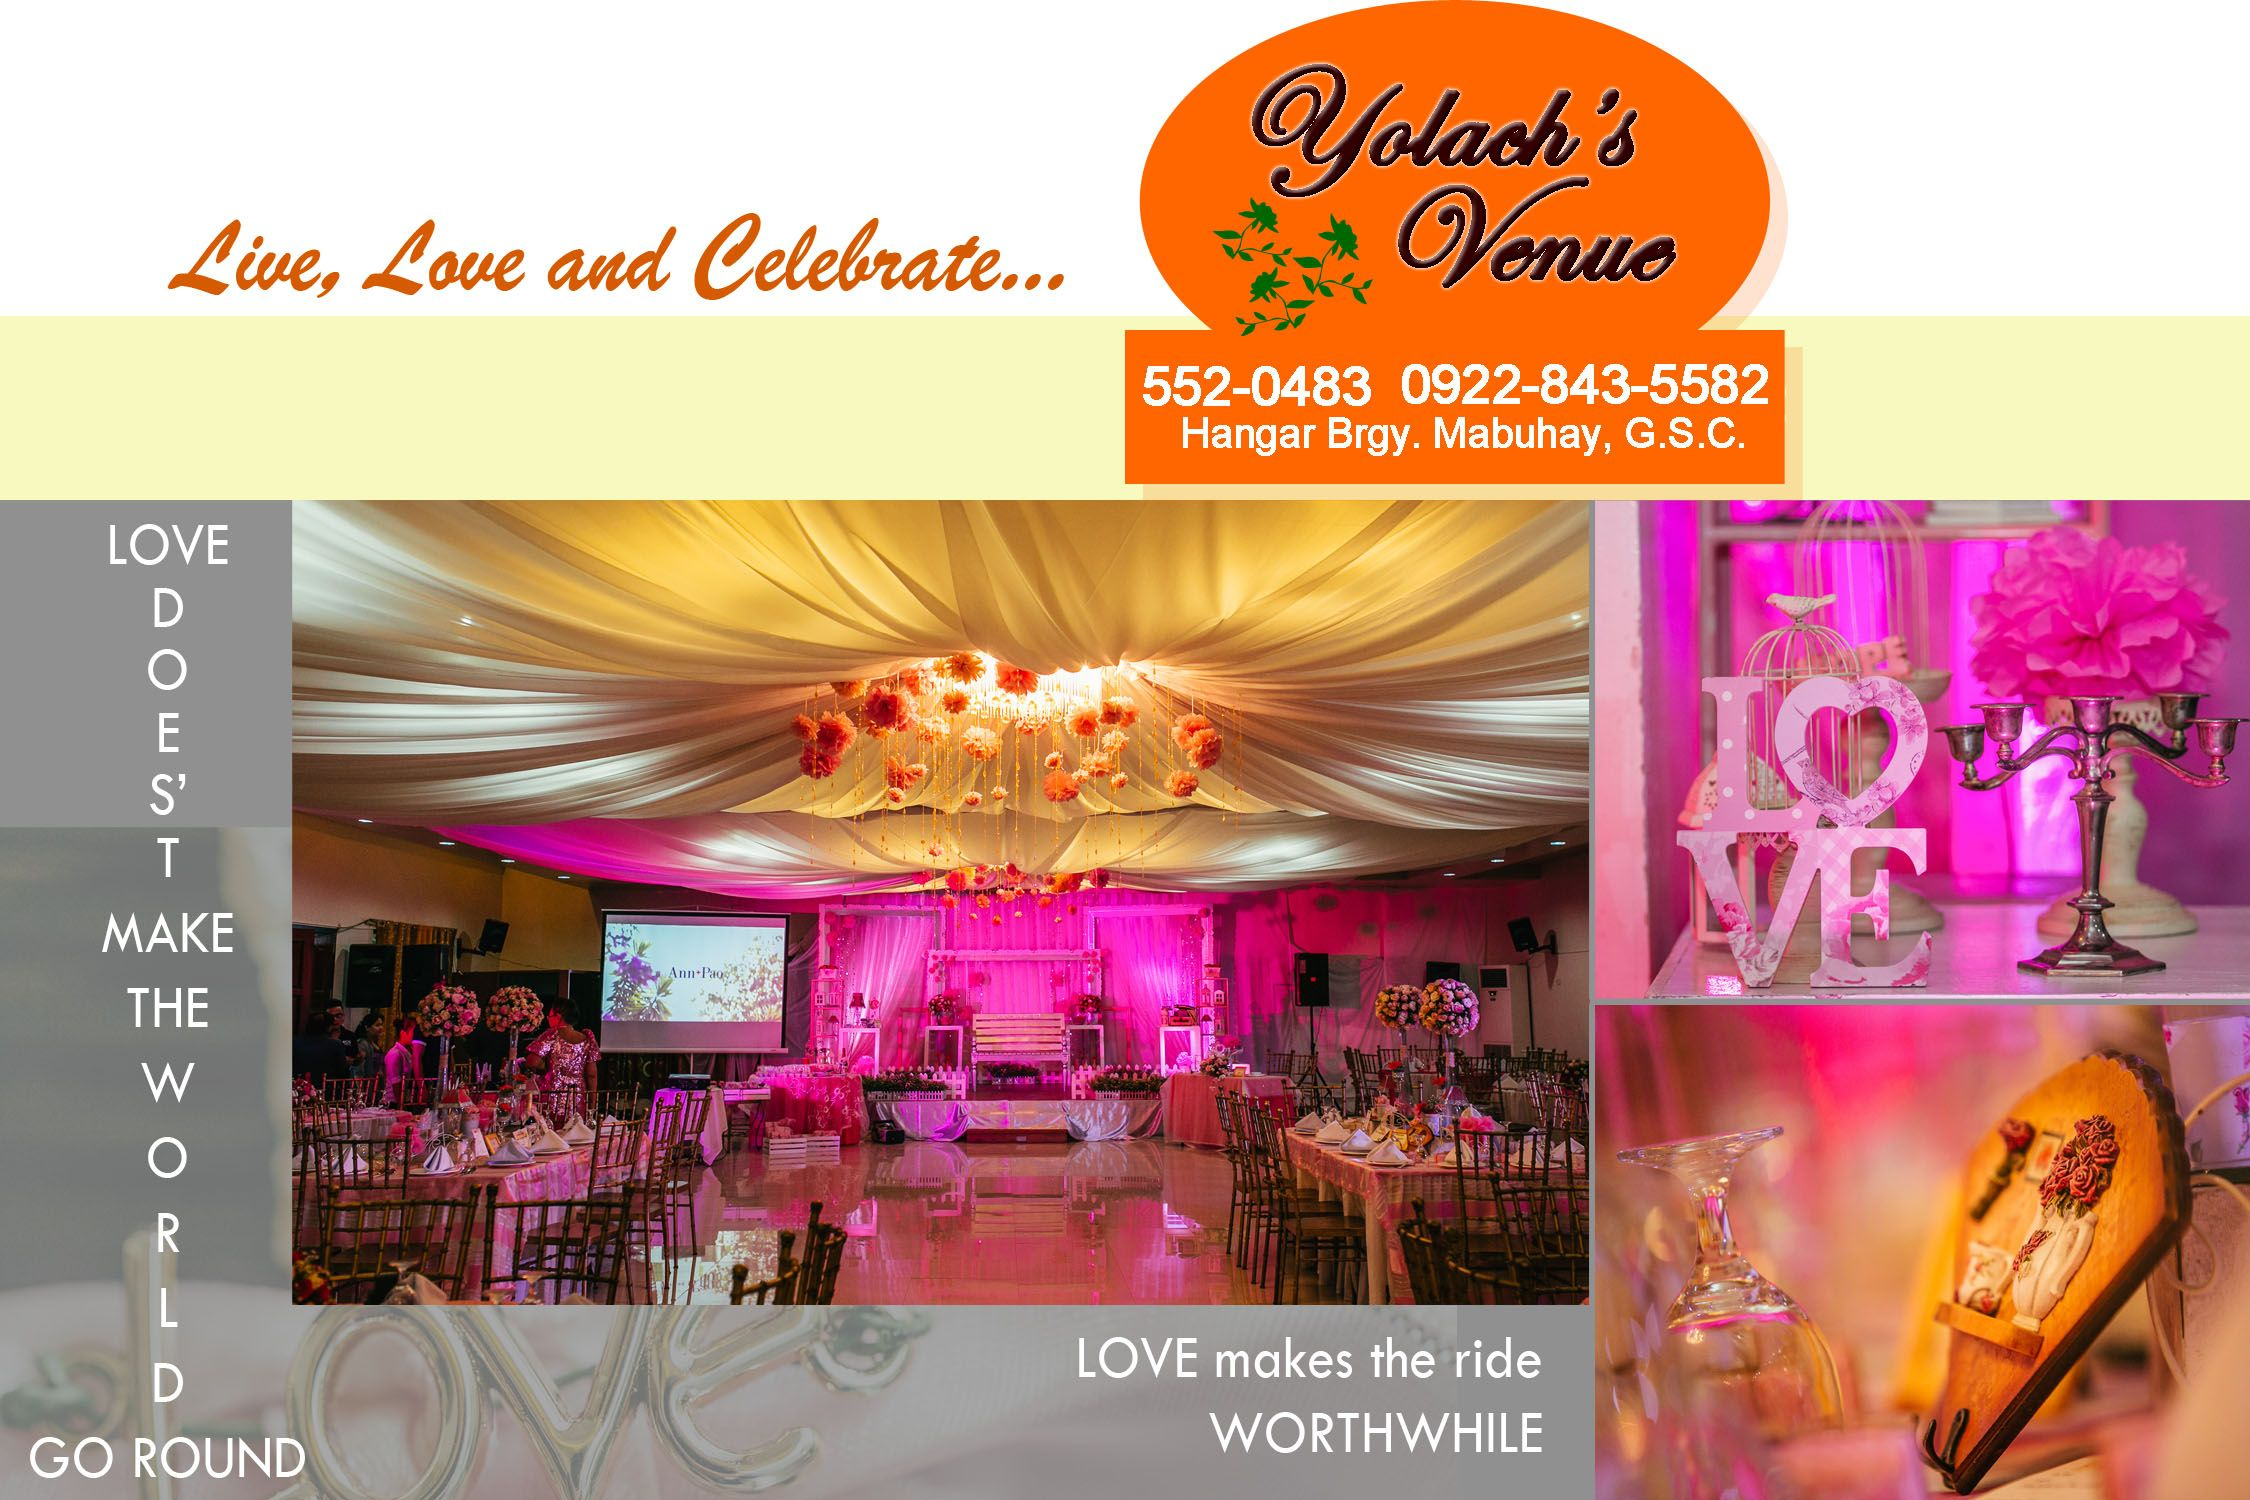 Wedding Venue In General Santos City That Offers Basic Food And Package Complete